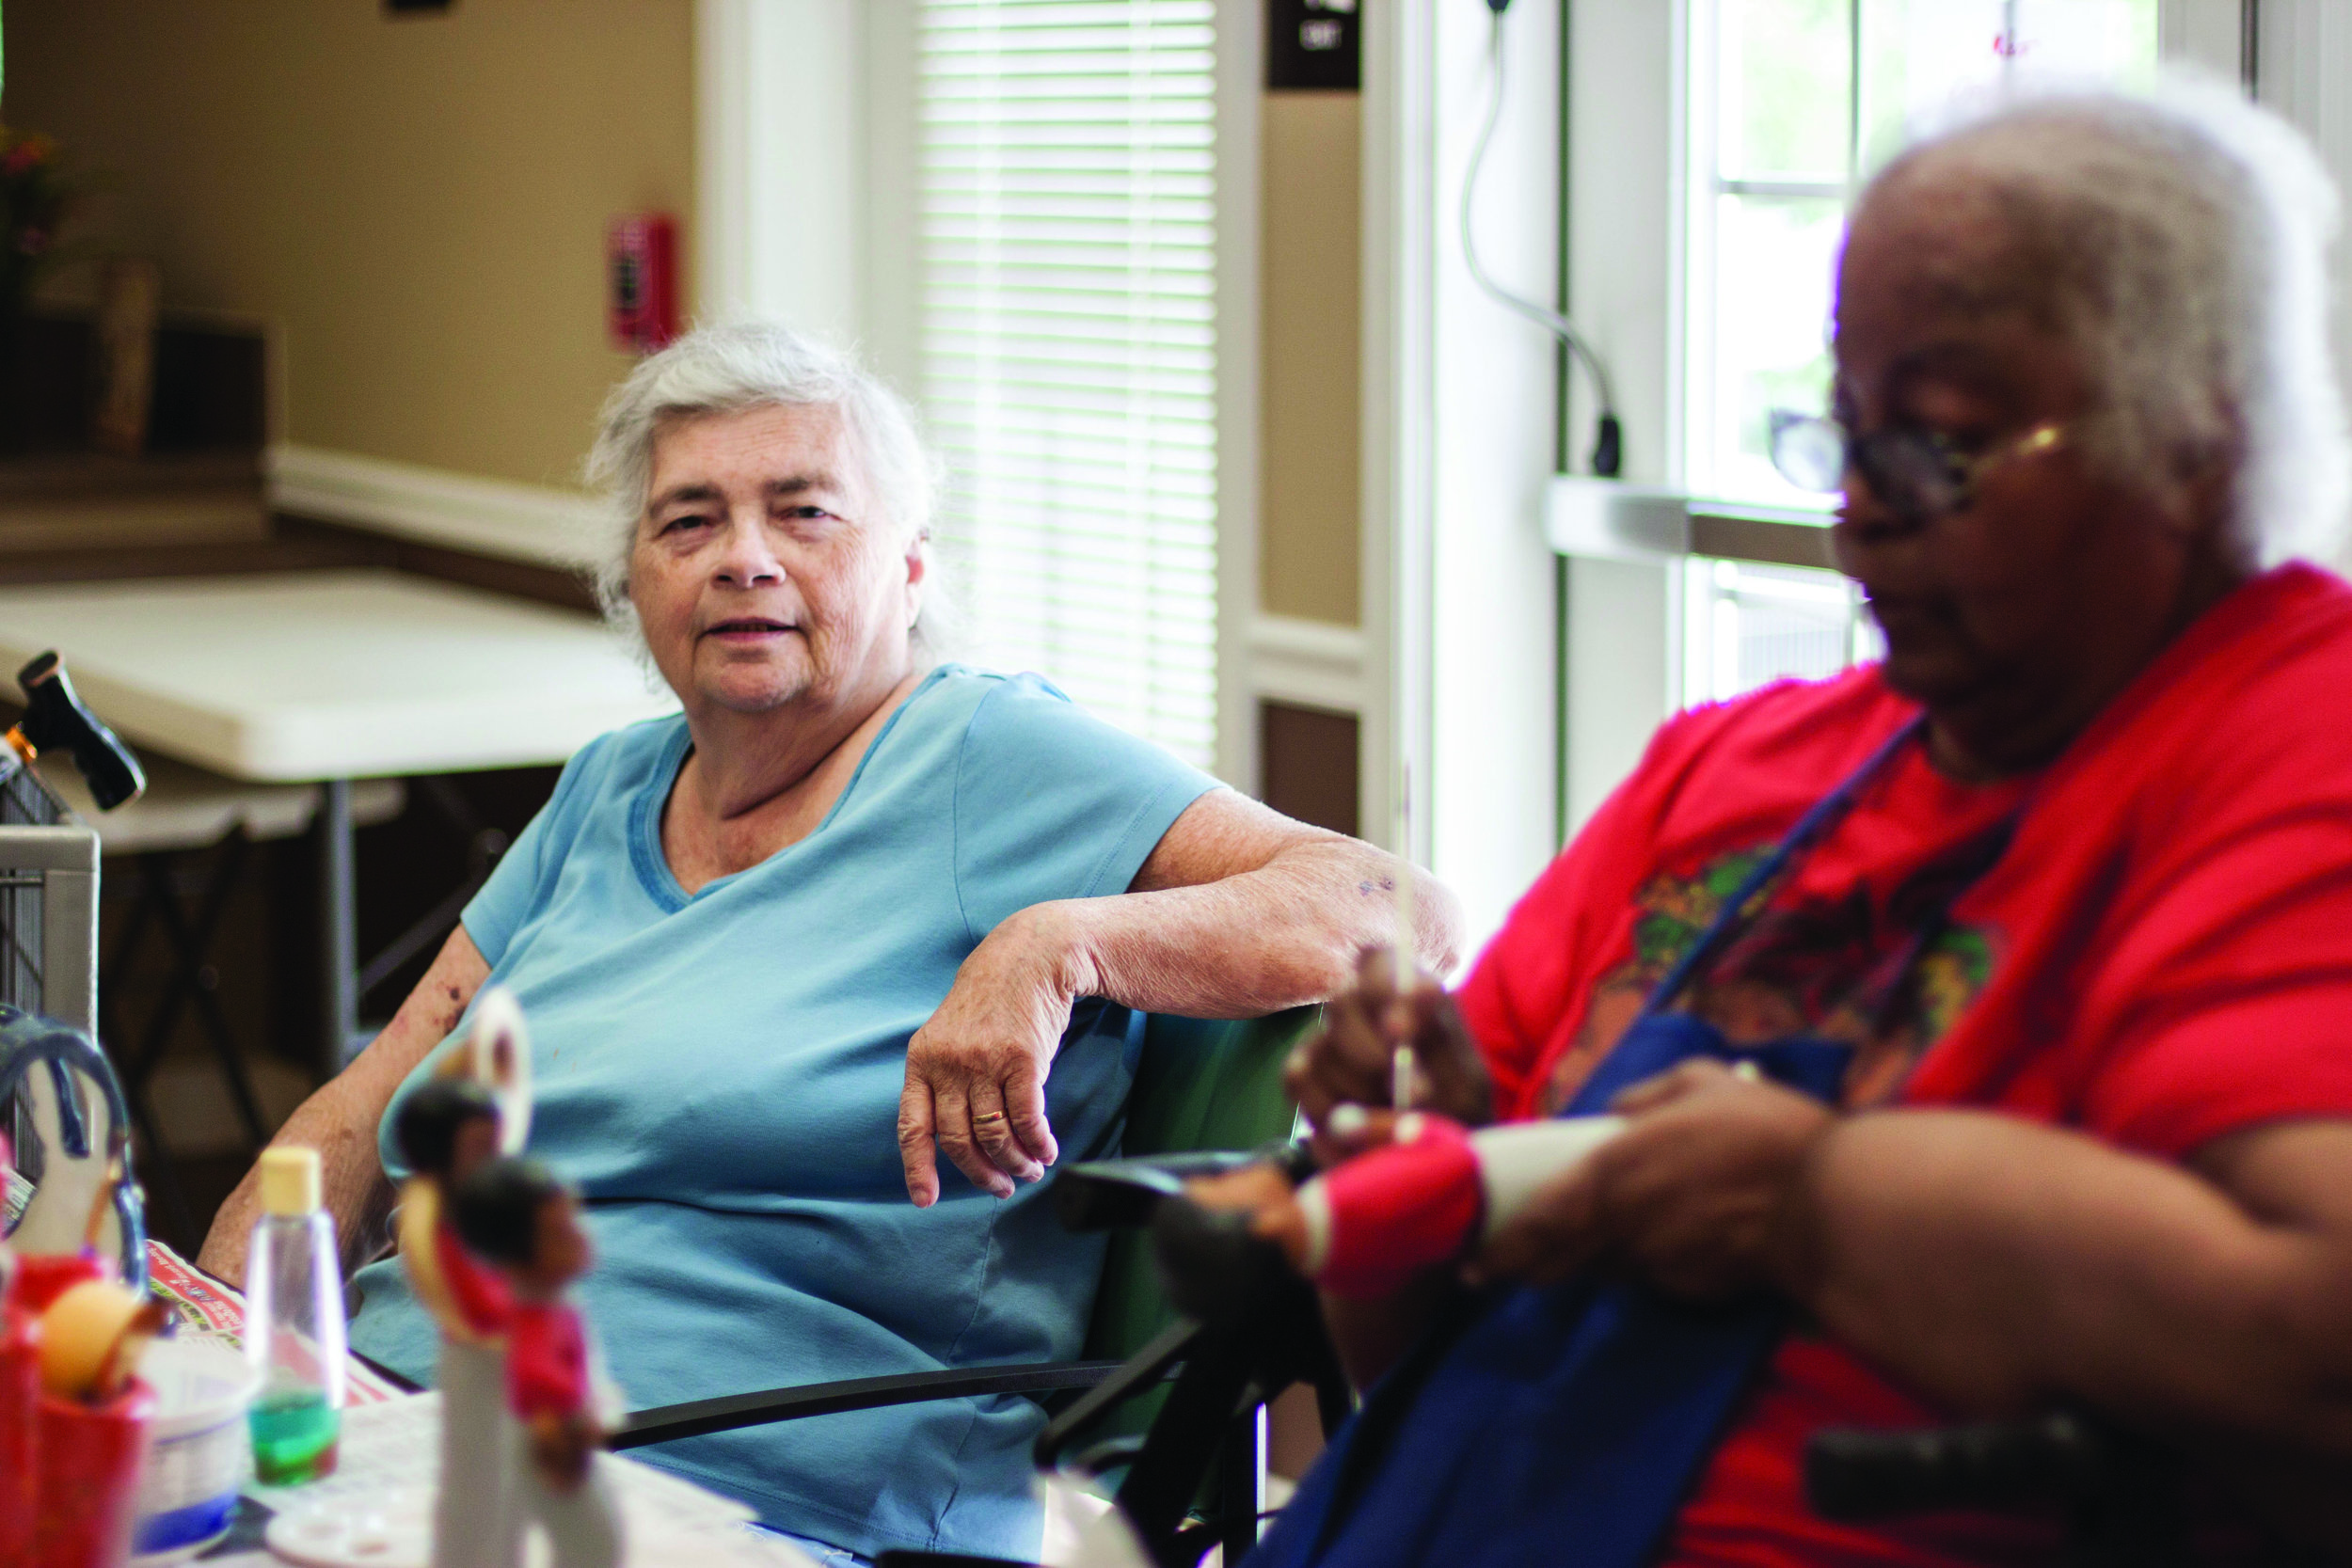 Residents of Homeport's Eastway Village in Whitehall